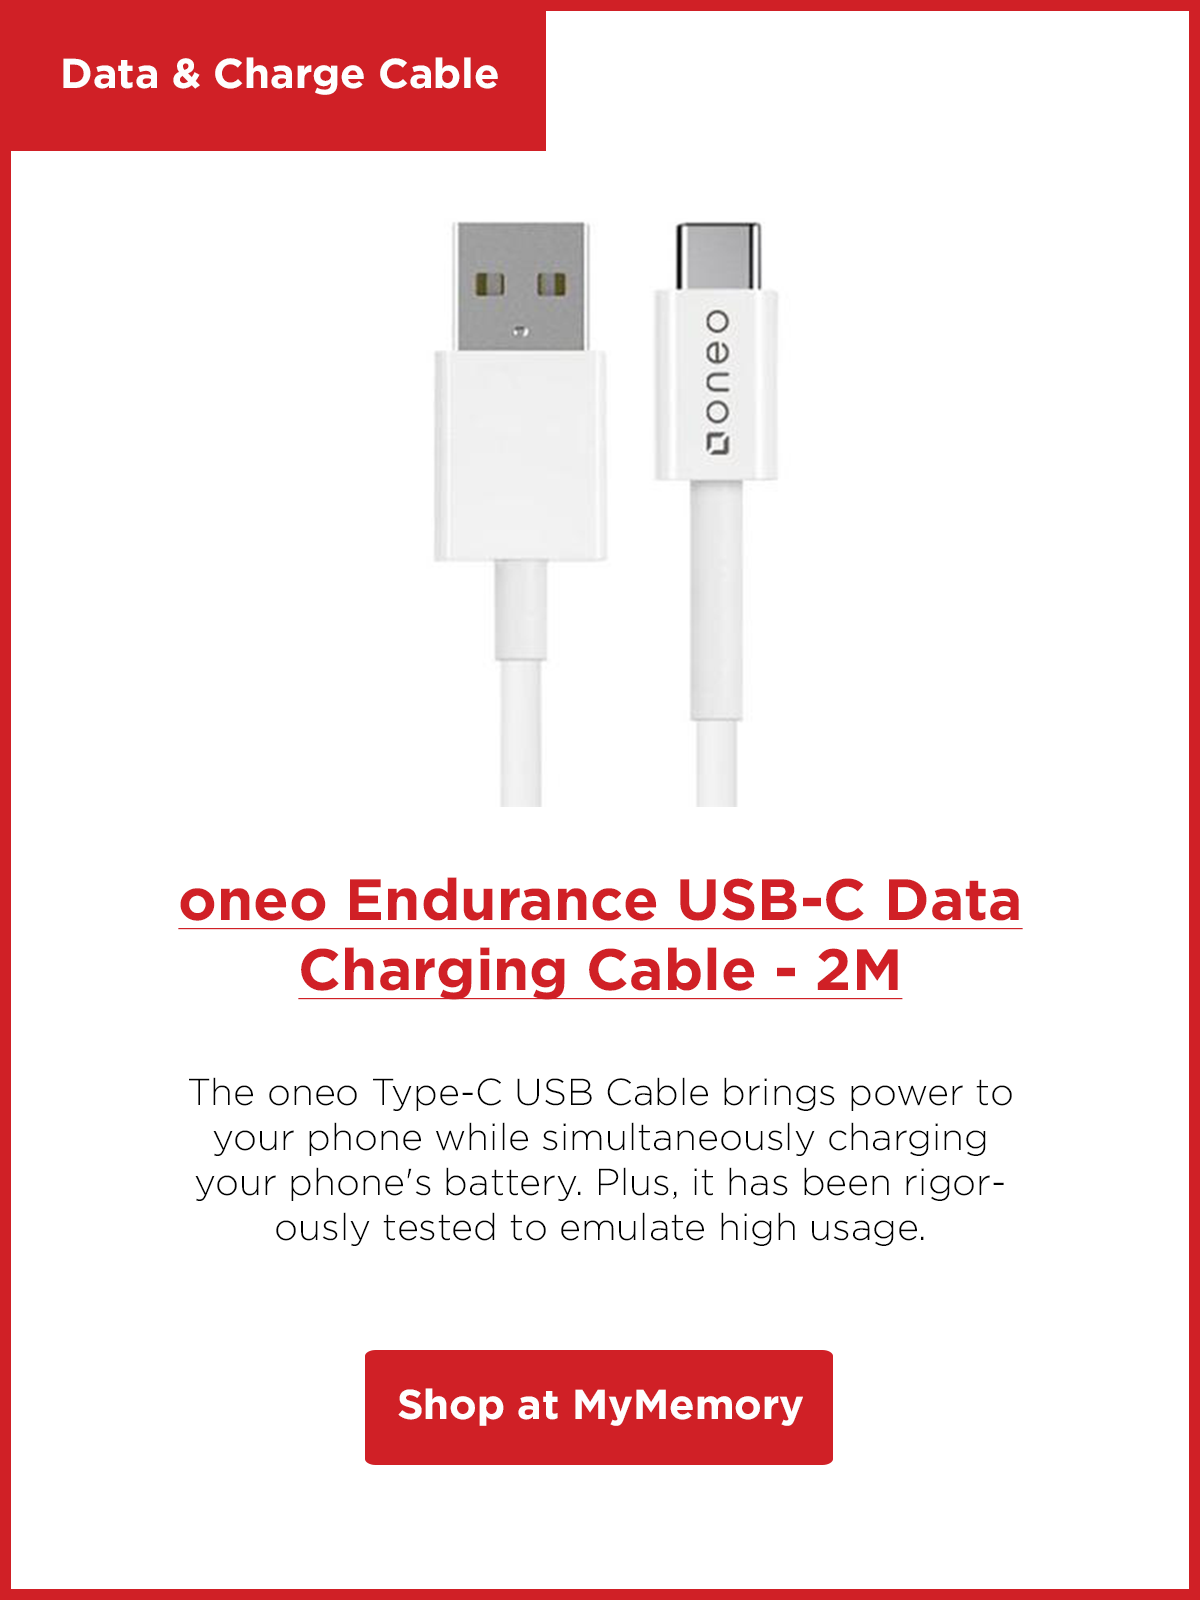 oneo Endurance USB-C Data Charging Cable - 2M